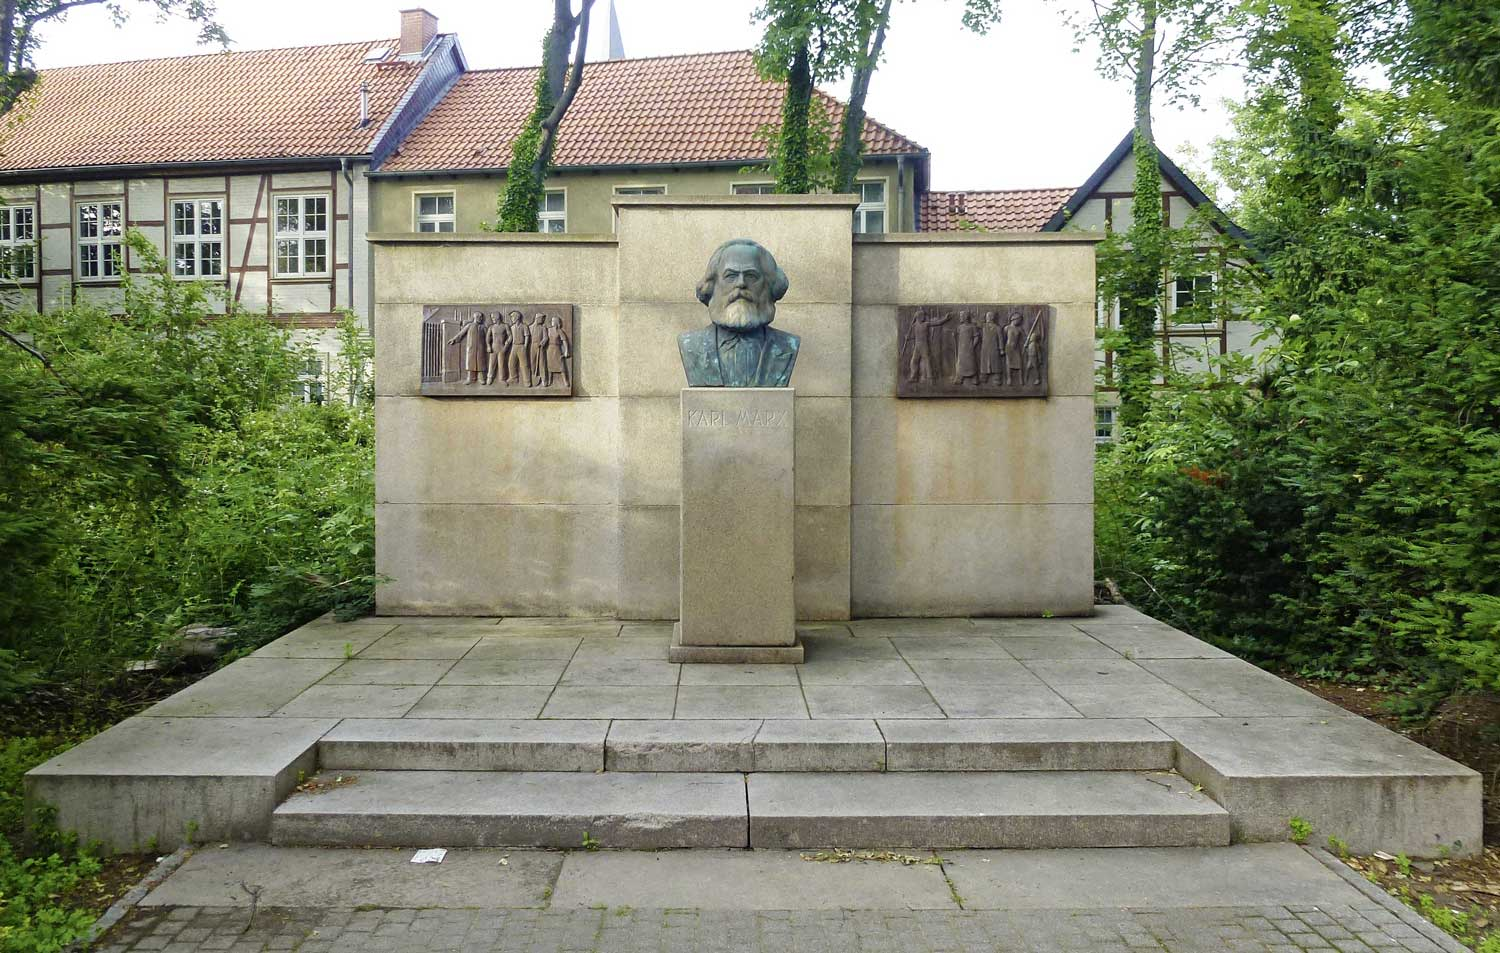 Karl-Marx-Denkmal in Wernigerode, Rudolf Wewerka, 1953, Steinsockel mit Bronzebüste © By Migebert [CC BY-SA 4.0  (https://creativecommons.org/licenses/by-sa/4.0)], from Wikimedia Commons